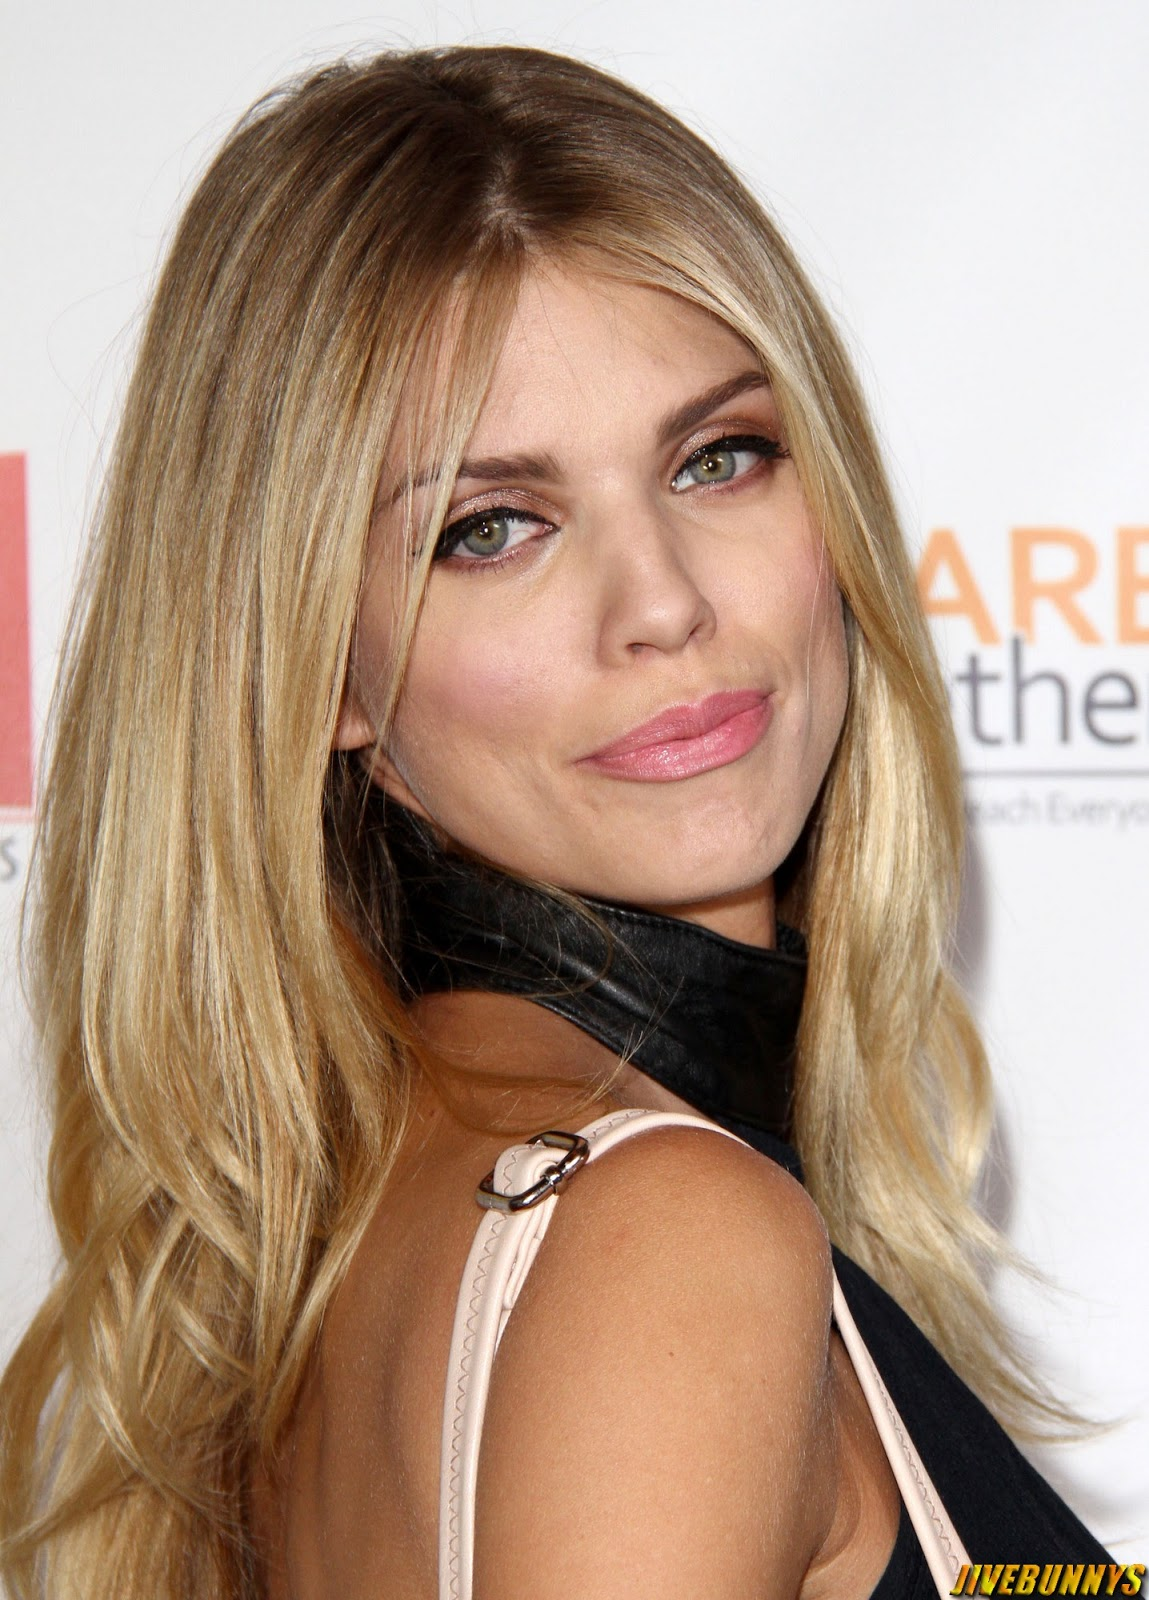 AnnaLynne McCord - Premiere of '8 DAYS' in Los Angeles - 09/09/2014